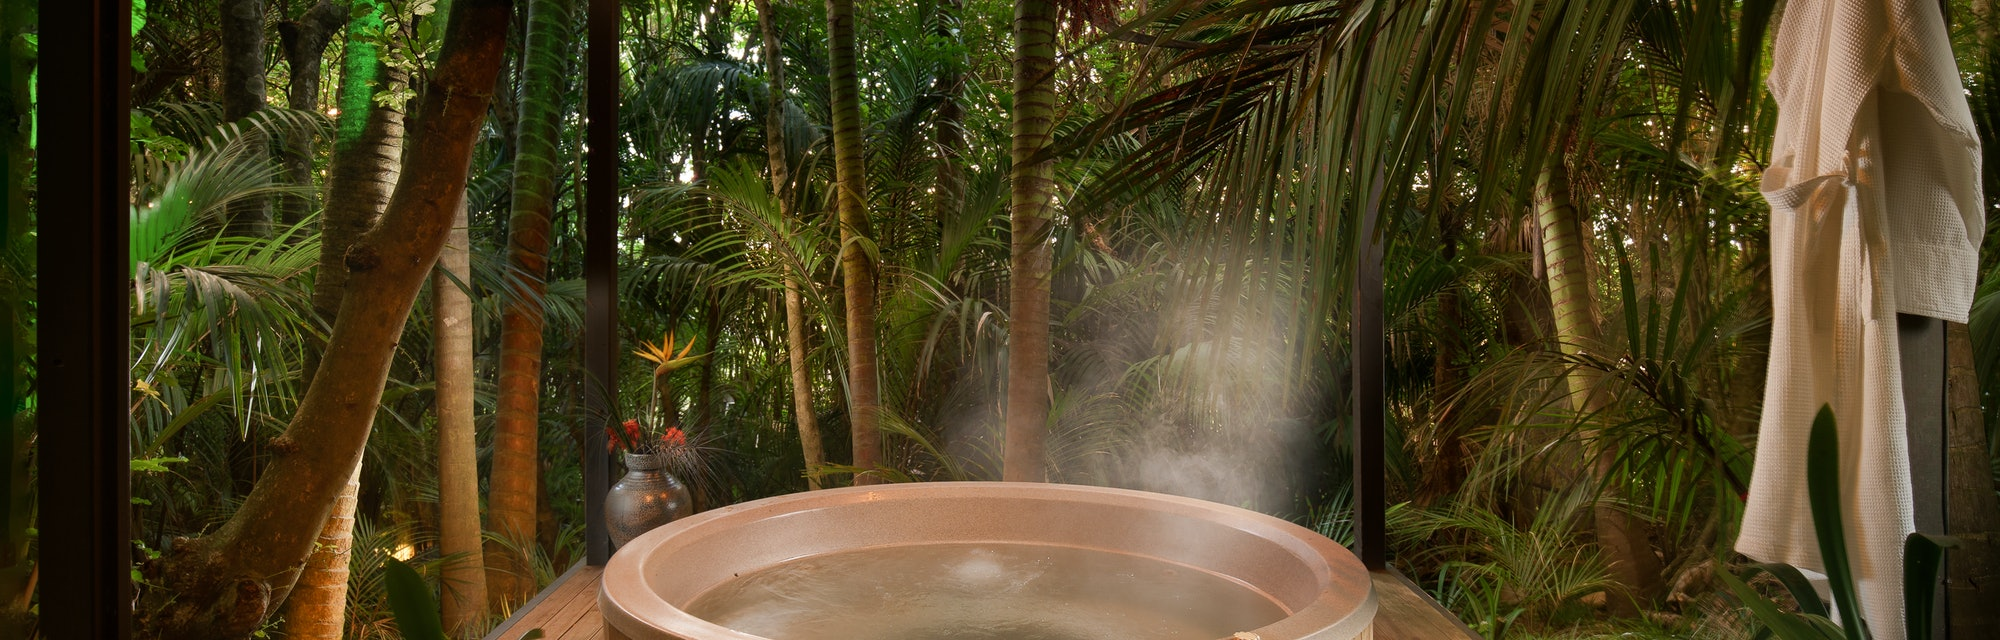 A hot tub under a pagoda sitting in the palm forest